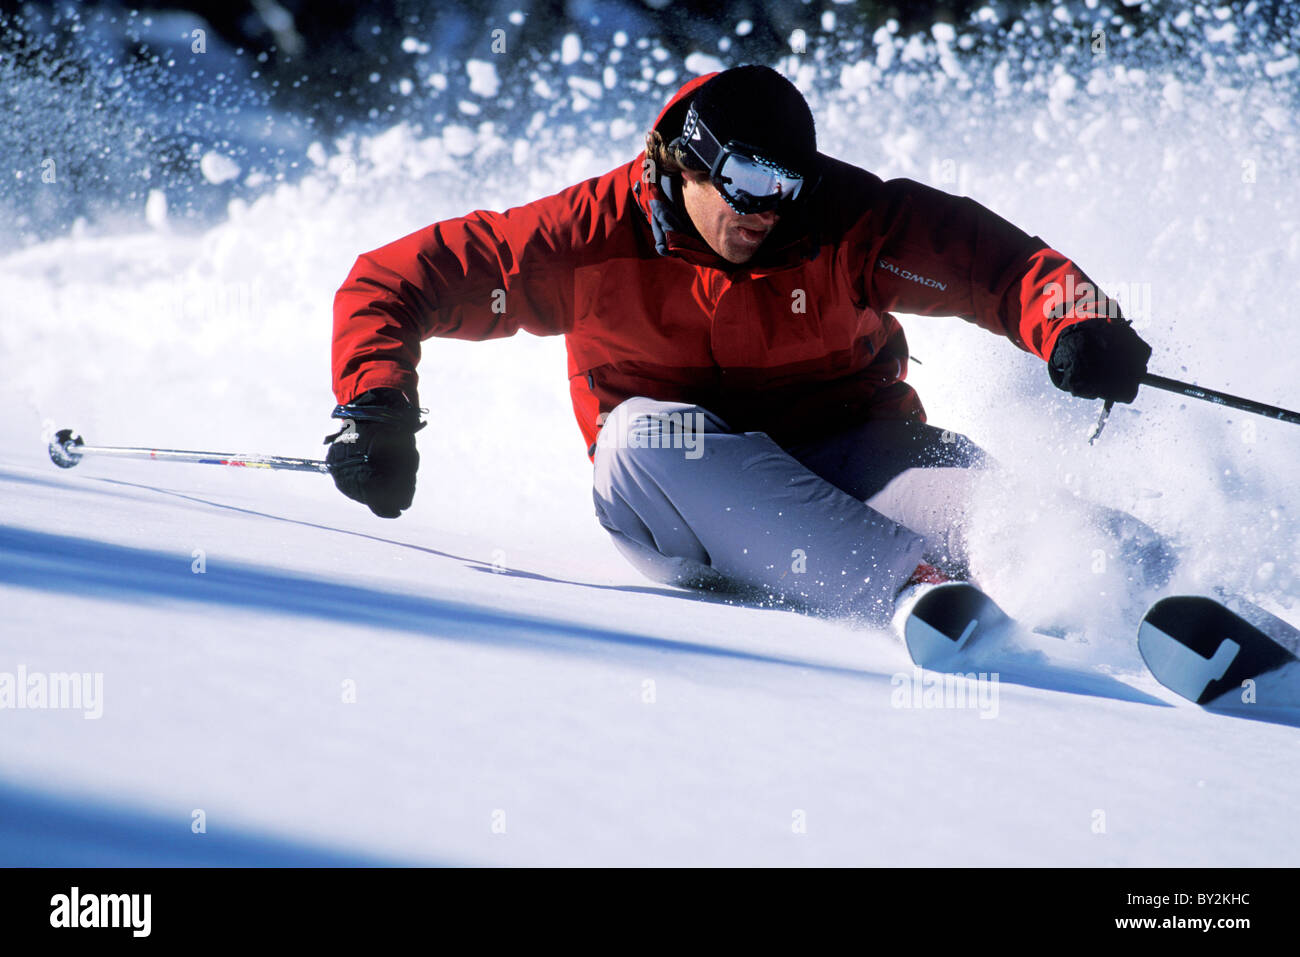 Skiing in Lake Tahoe. - Stock Image